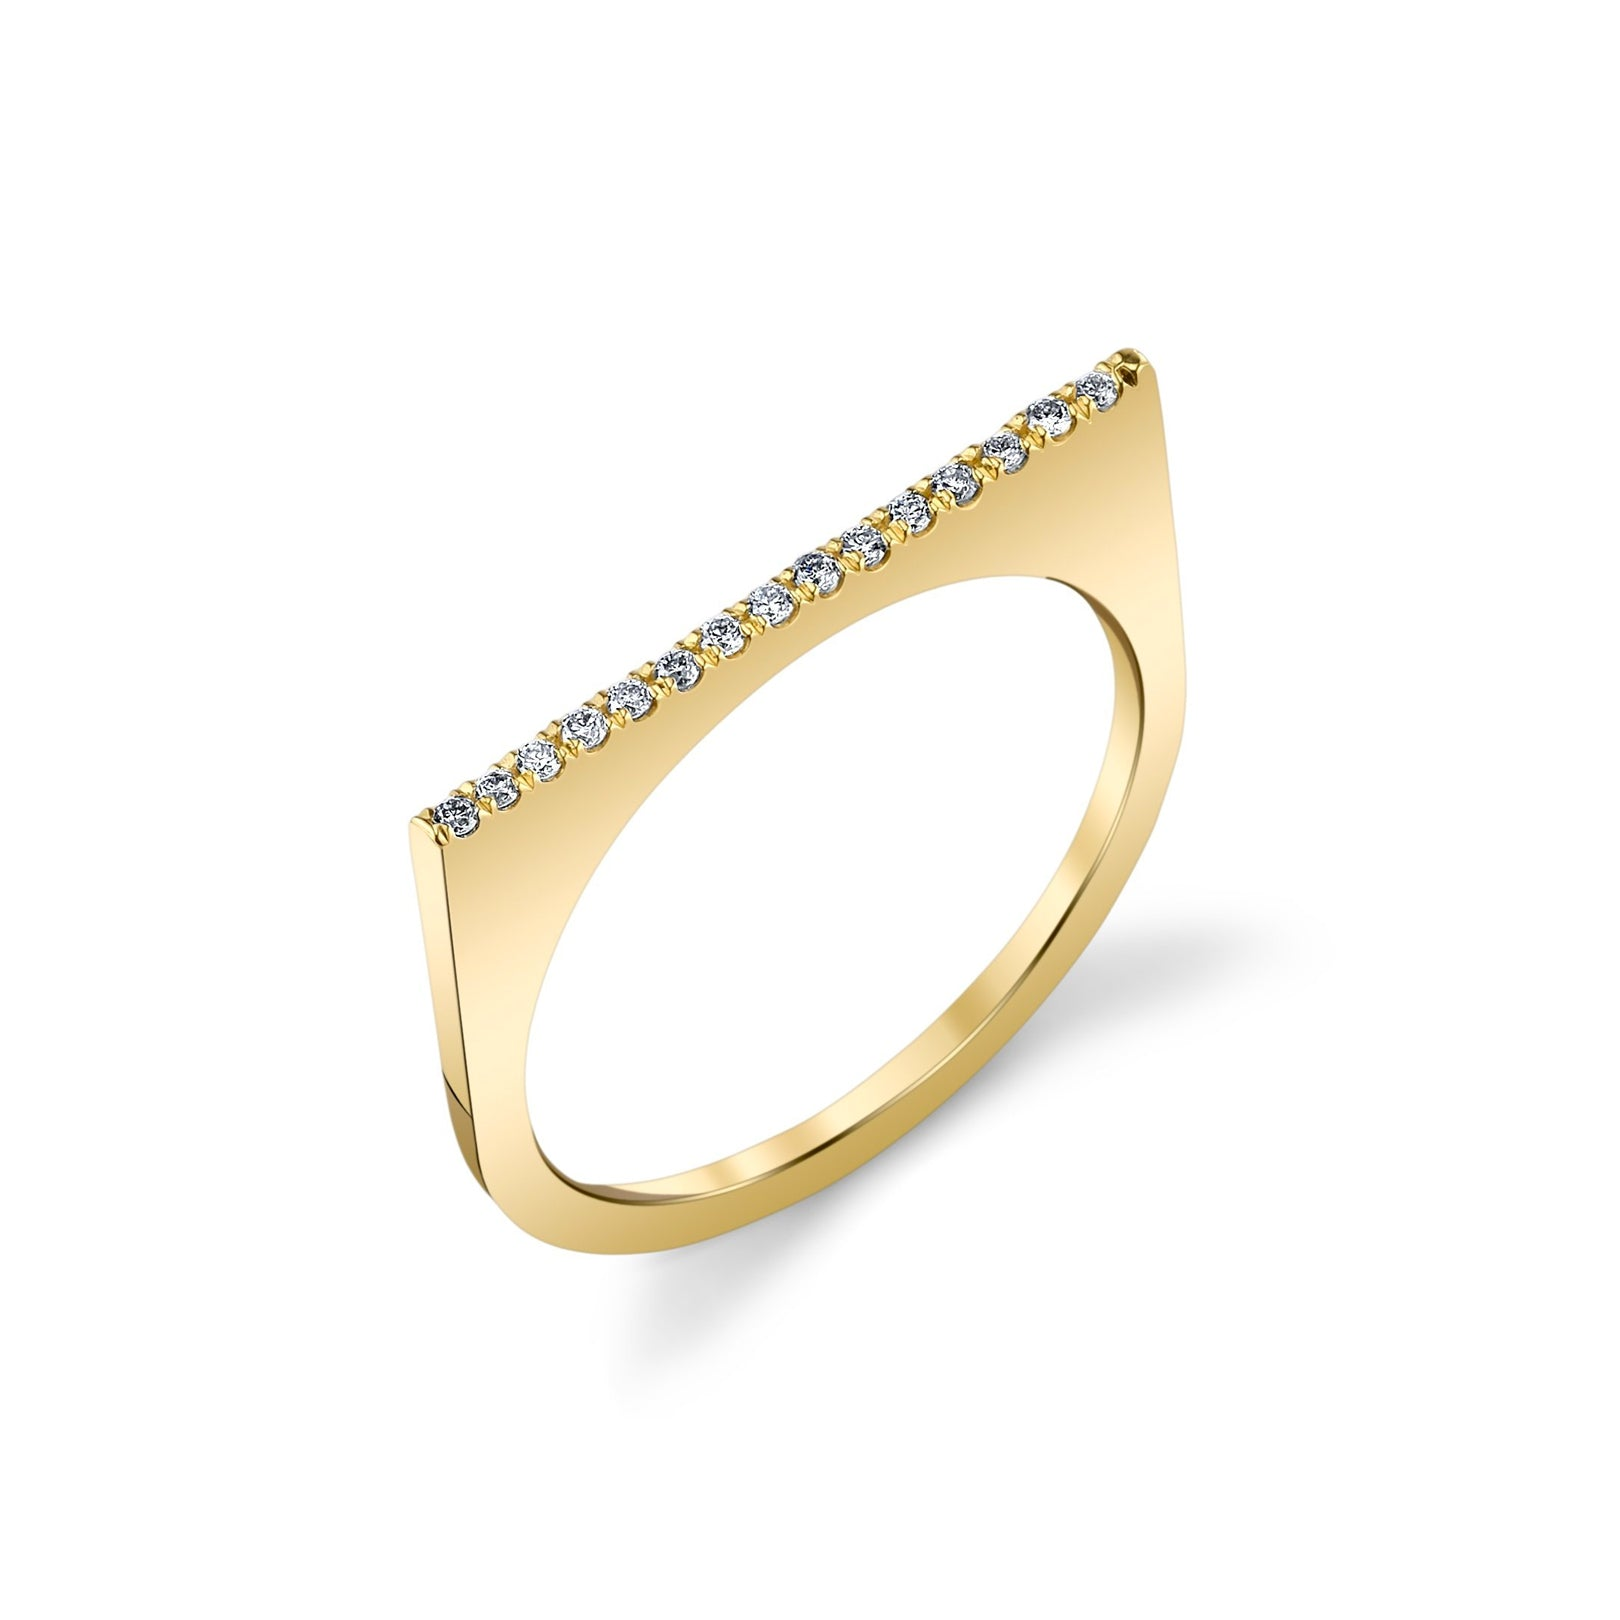 Line Ring With White Pavé Diamonds - Gabriela Artigas